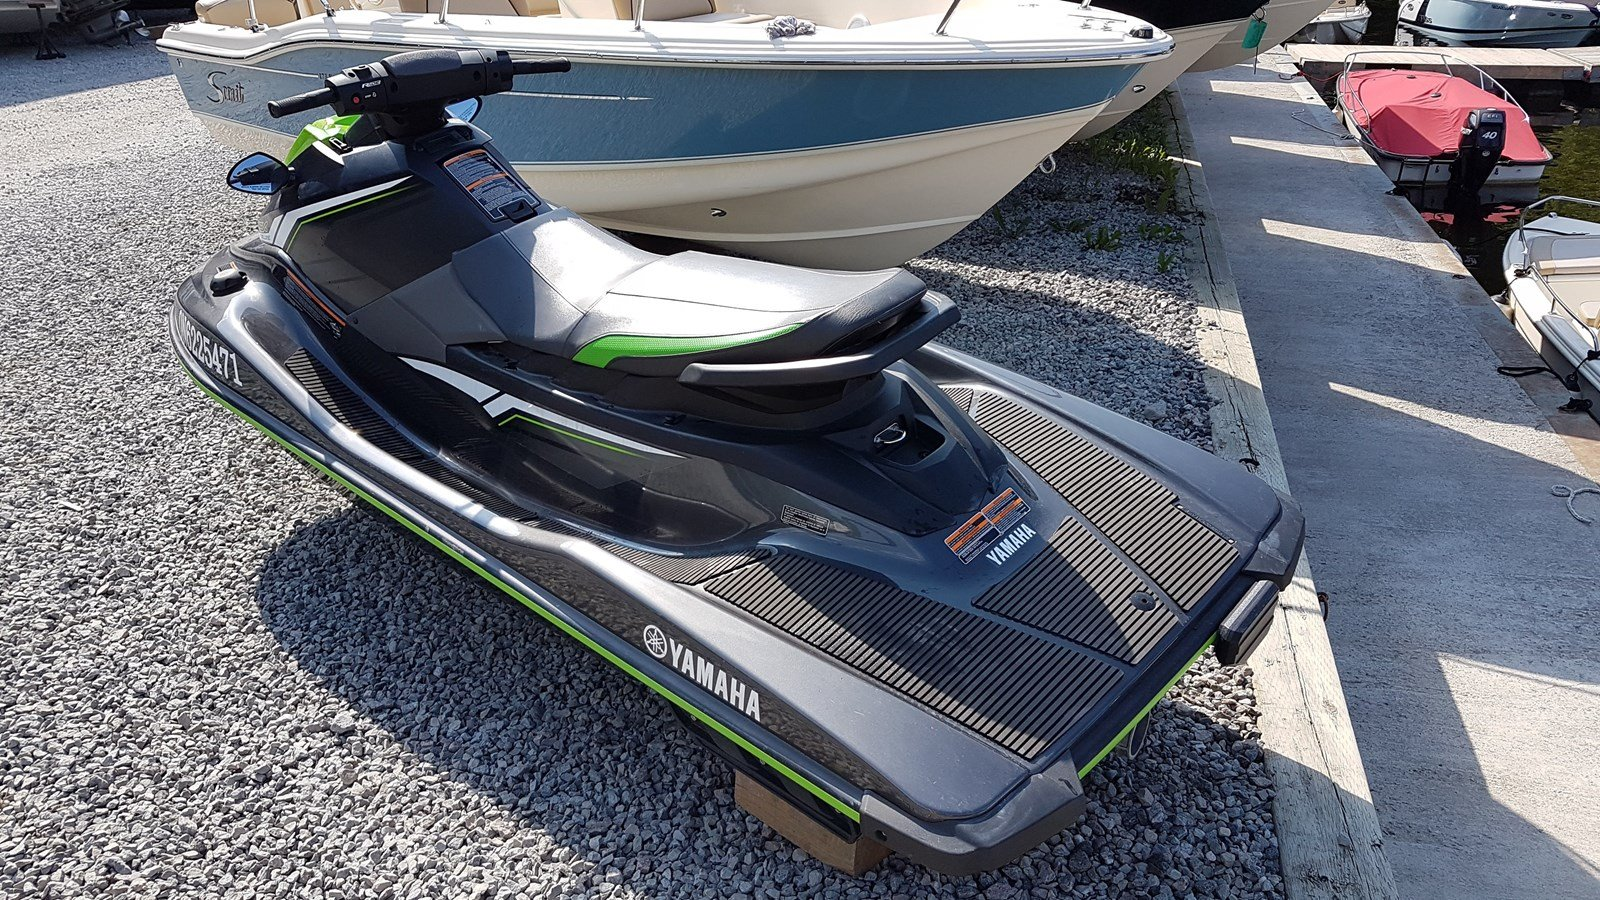 Pre-Owned 2018 Yamaha WaveRunner EX Deluxe - JET PUMP PROPULSION - RIDE TECHNOLOGY